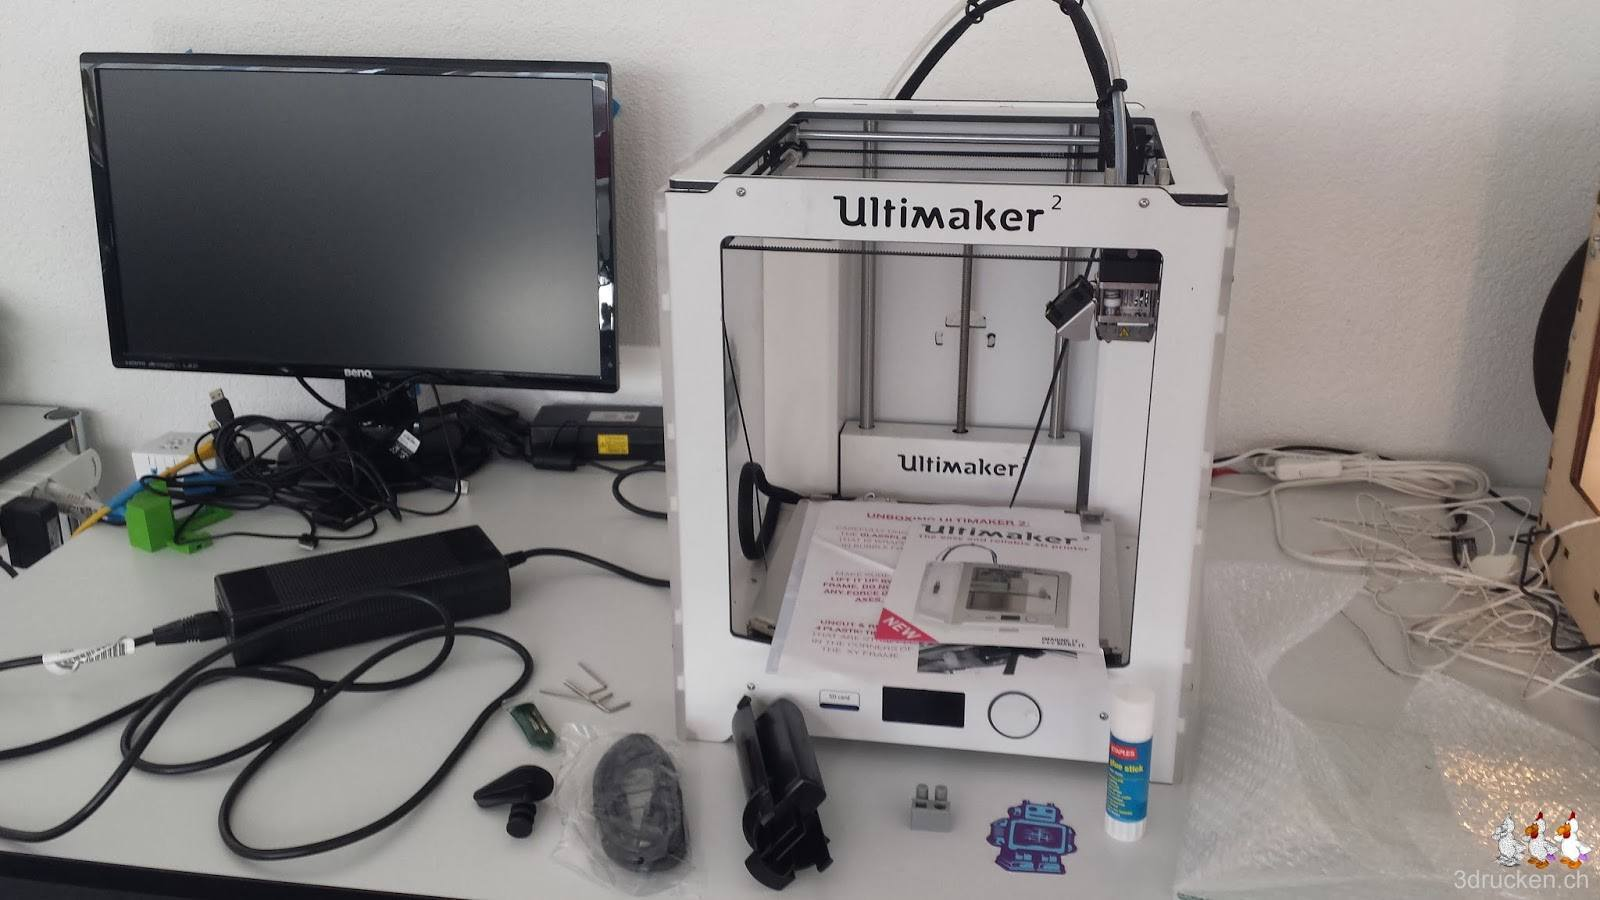 Ultimaker 2 unboxing